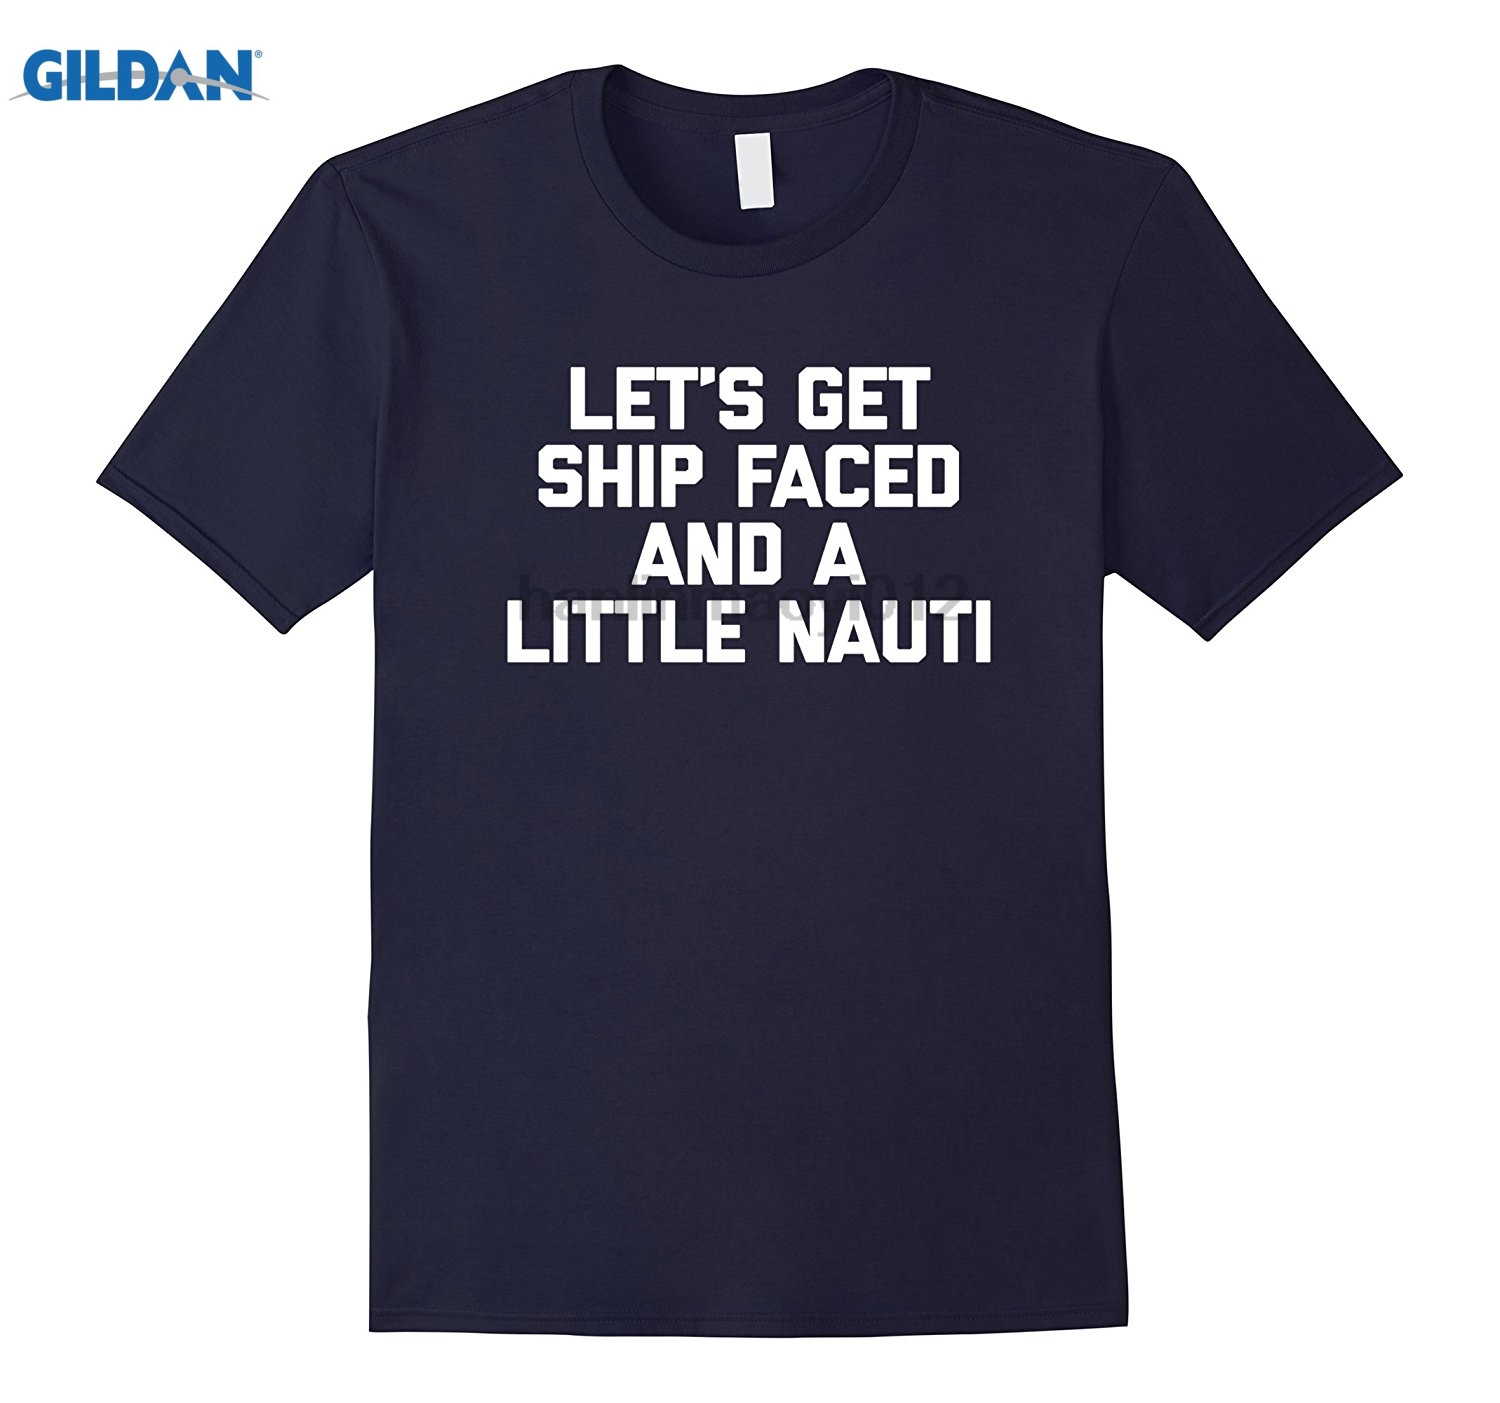 GILDAN Lets Get Ship Faced & A Little Nauti T-Shirt boat cruise Dress female T-shirt ...